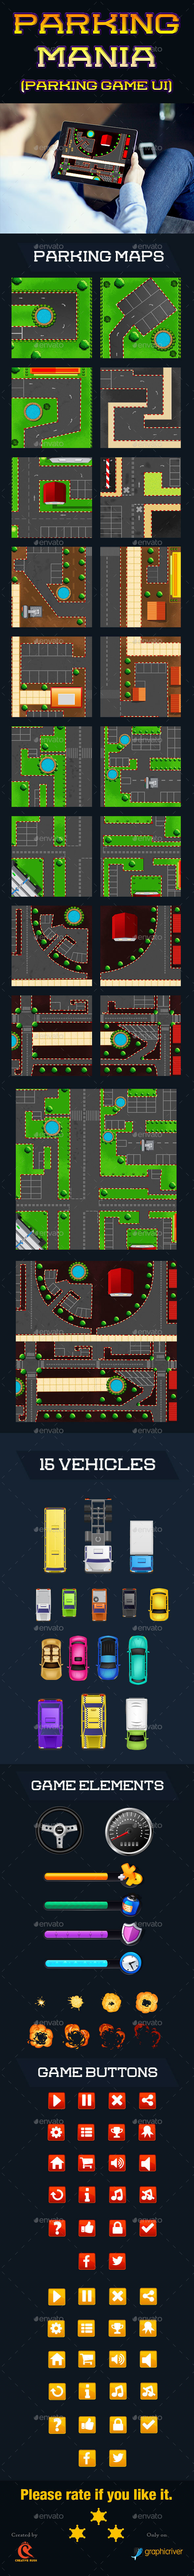 Parking Mania car game - User Interfaces Game Assets